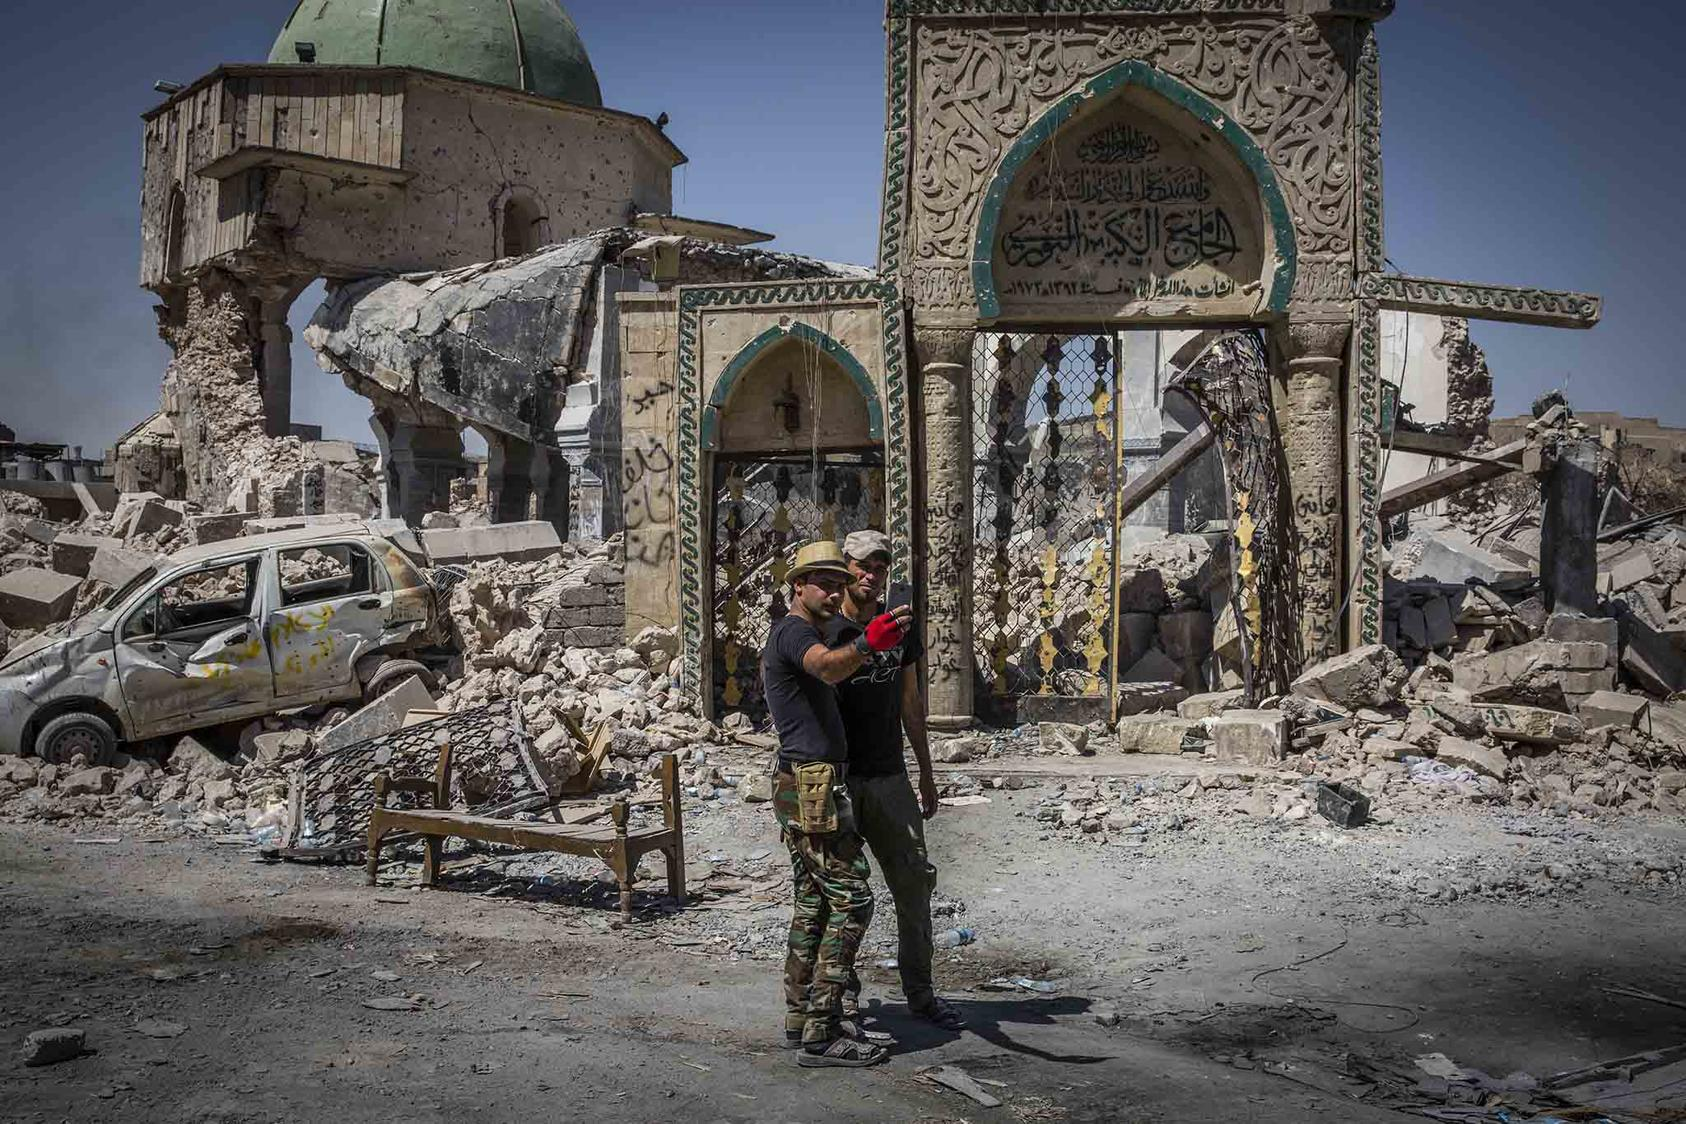 Two people take a selfie in front of a destroyed mosque. (Ivor Prickett/The New York Times)